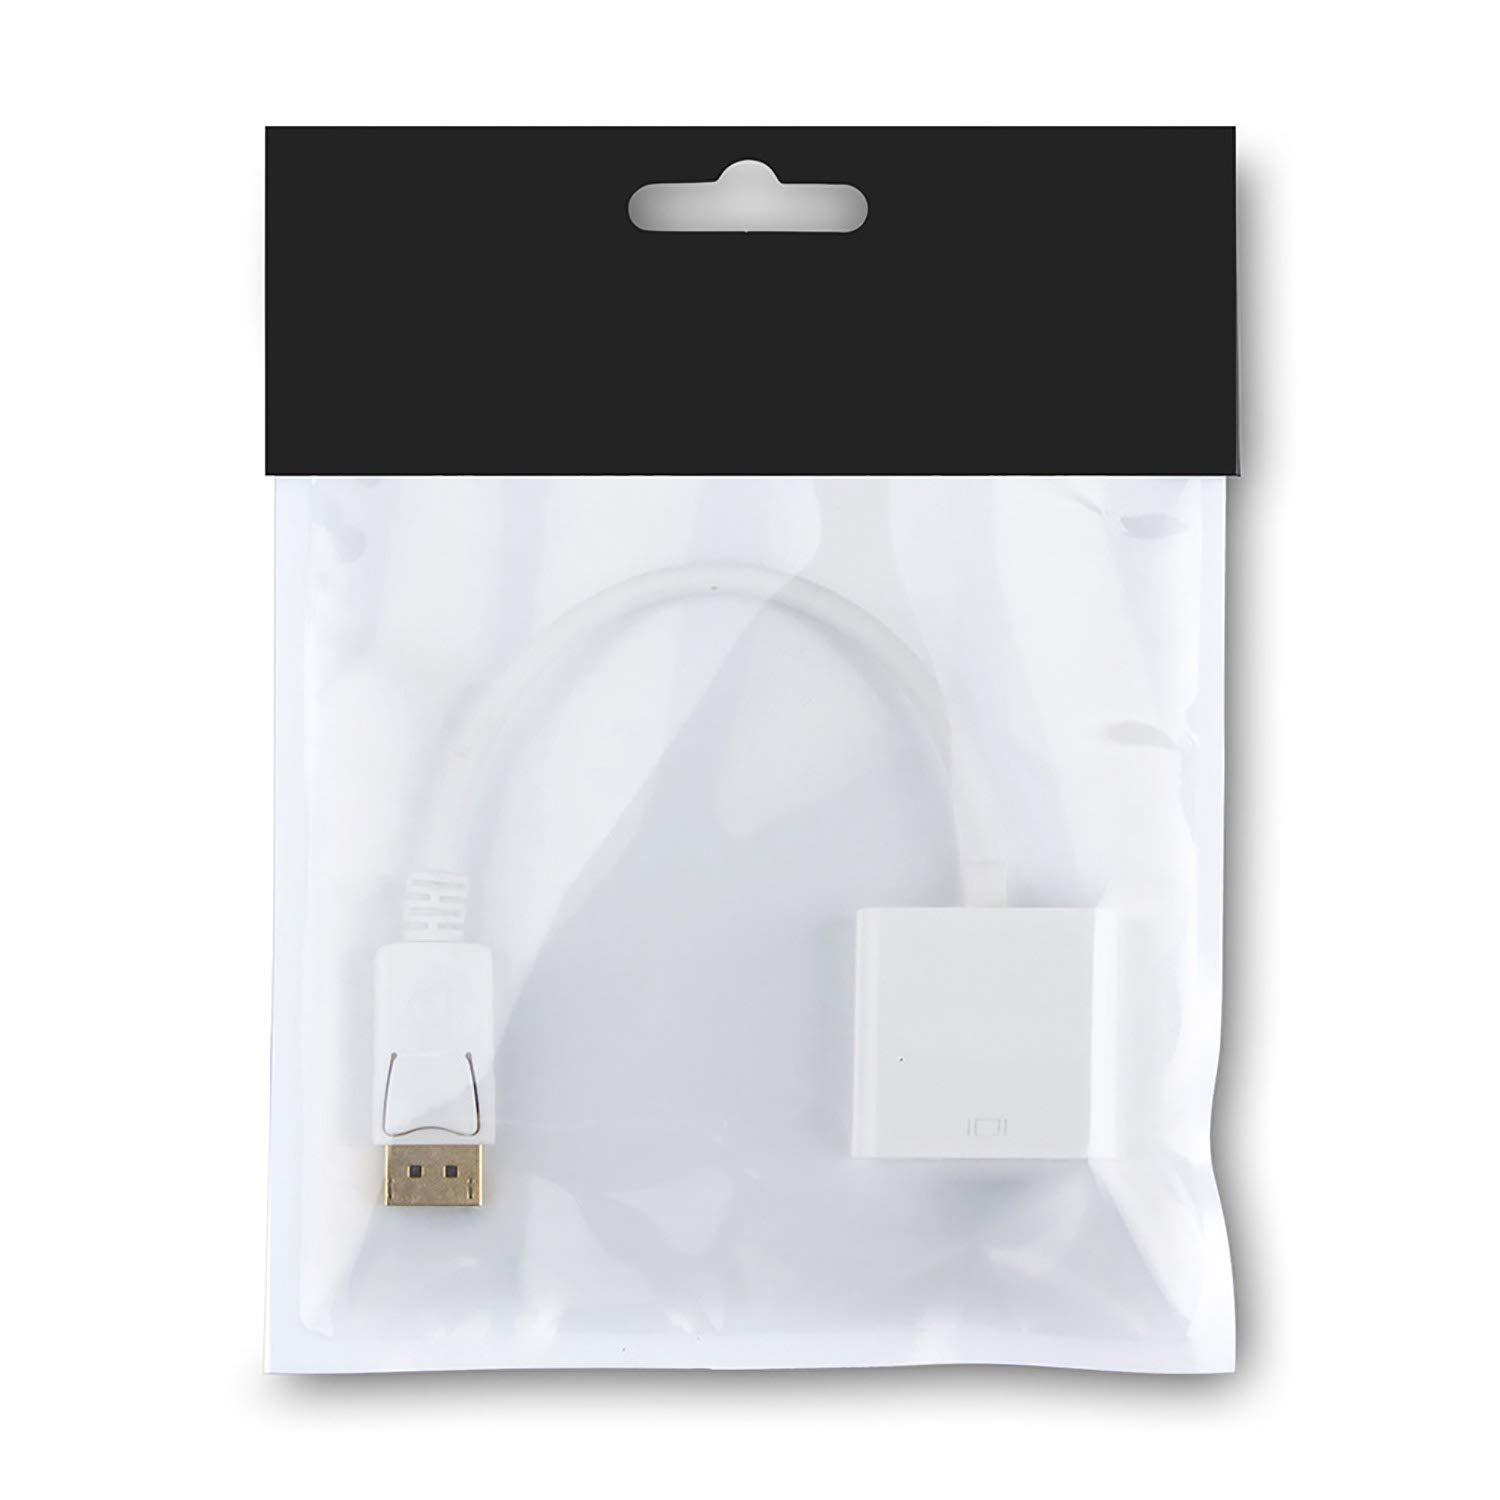 Standard DP to VGA Converter Displayport to VGA Adapter Cable Converter Connected TV Projection Computer to TV Extension Cable